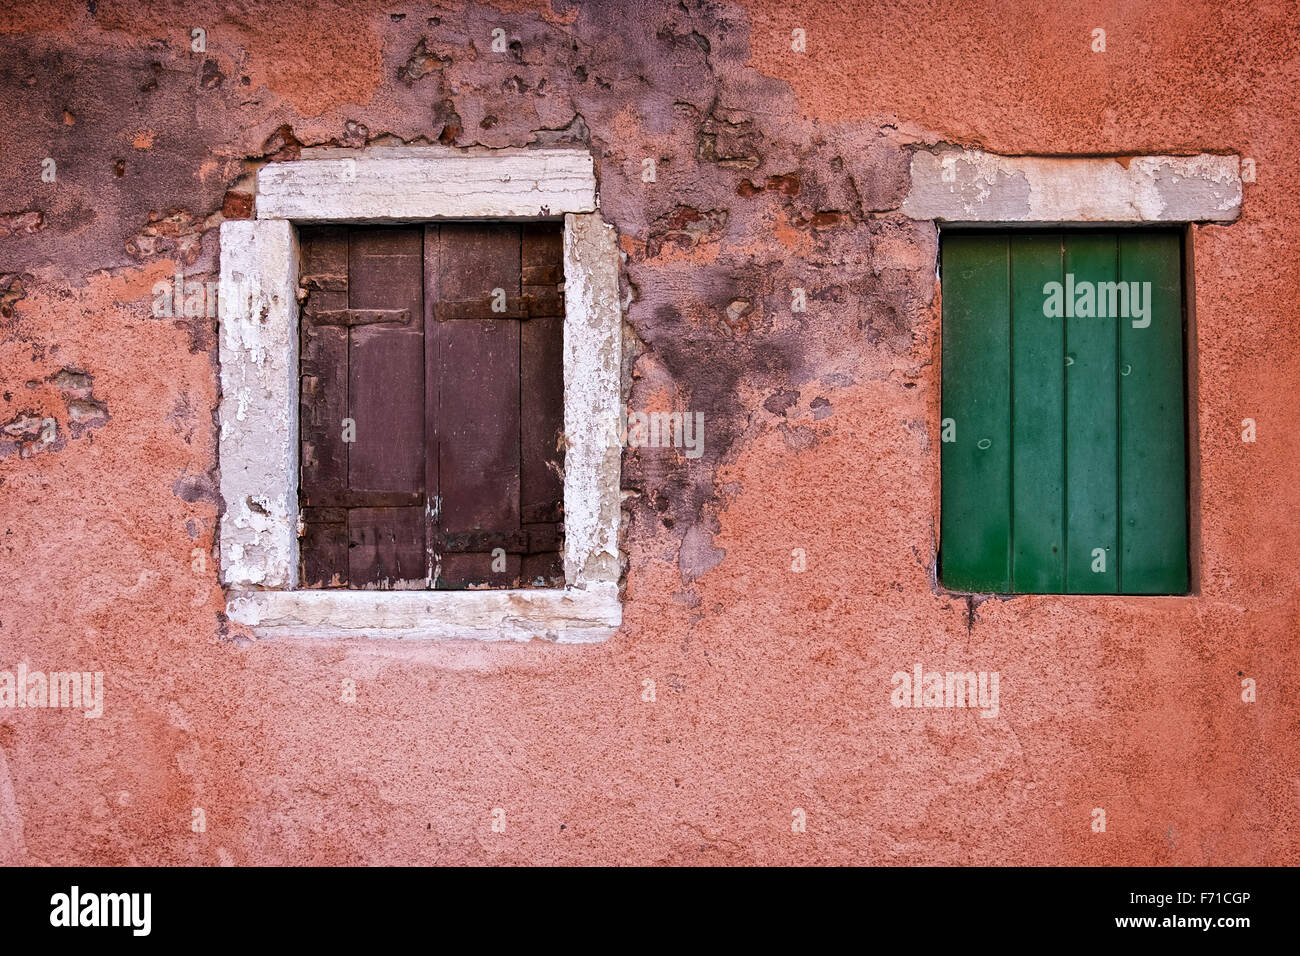 Venice Italy House exterior building detail, water damaged painted wall and shuttered windows - Stock Image